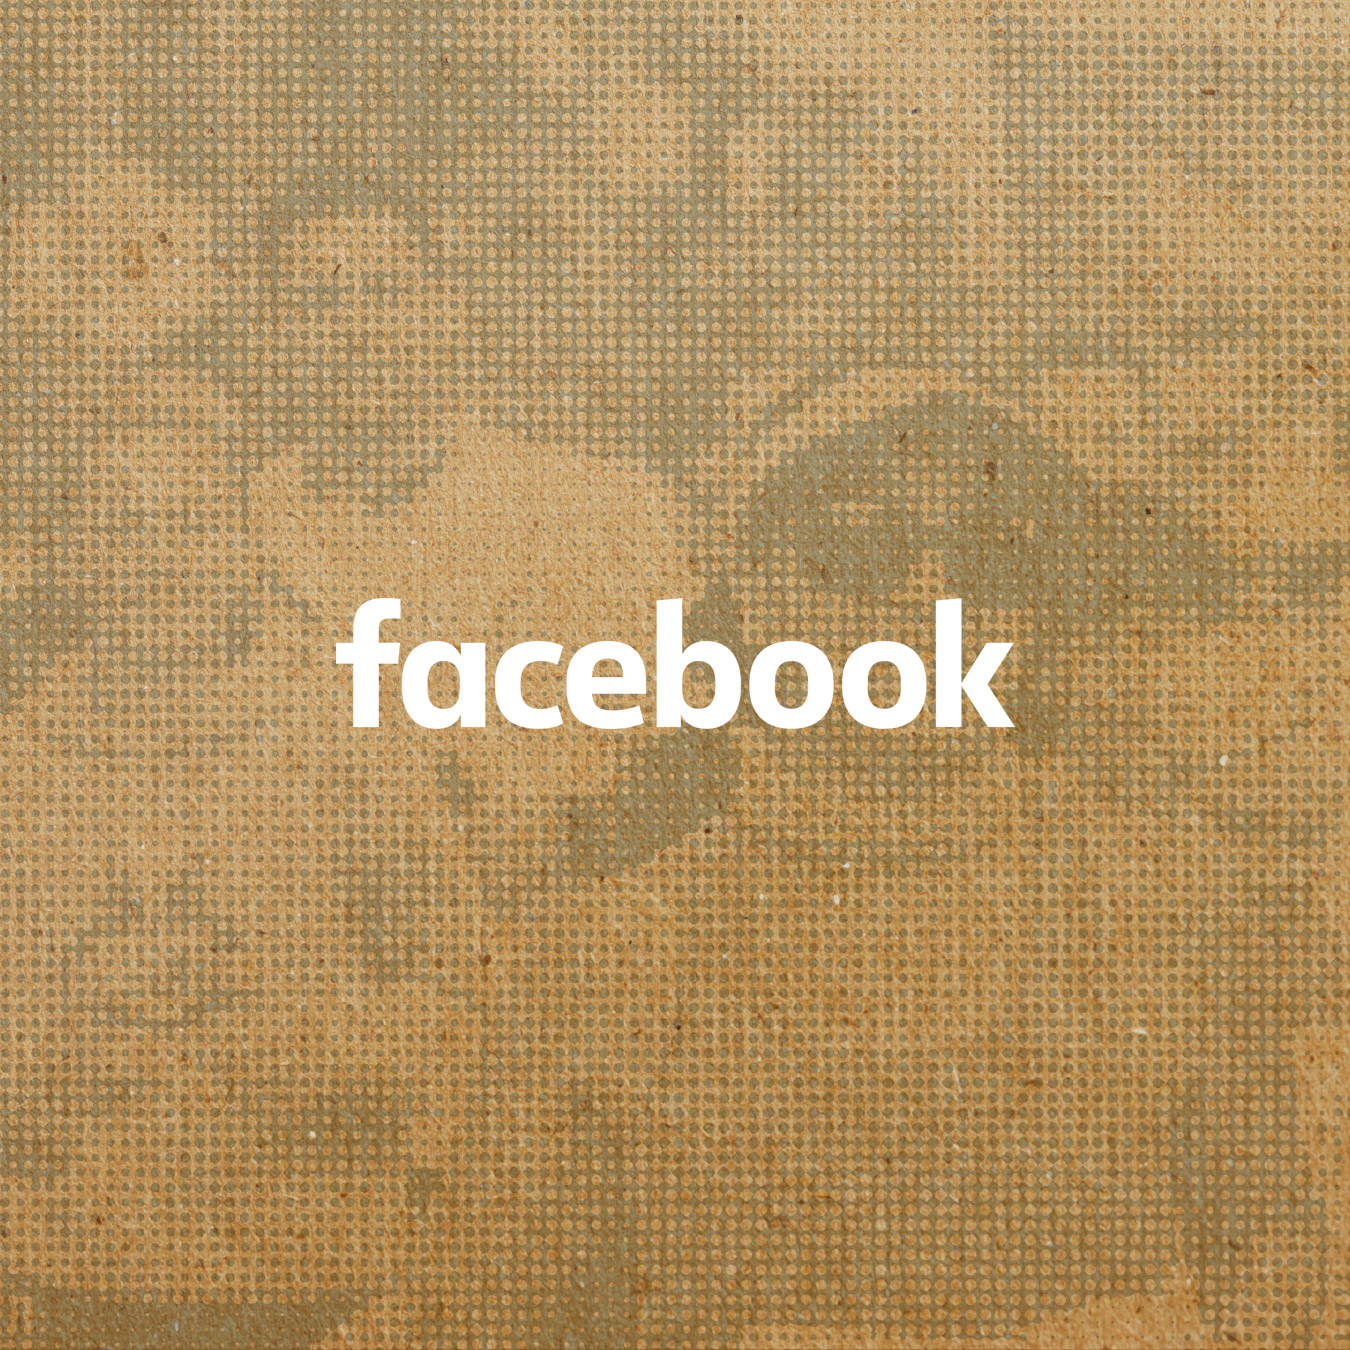 facebook-Contents-panel